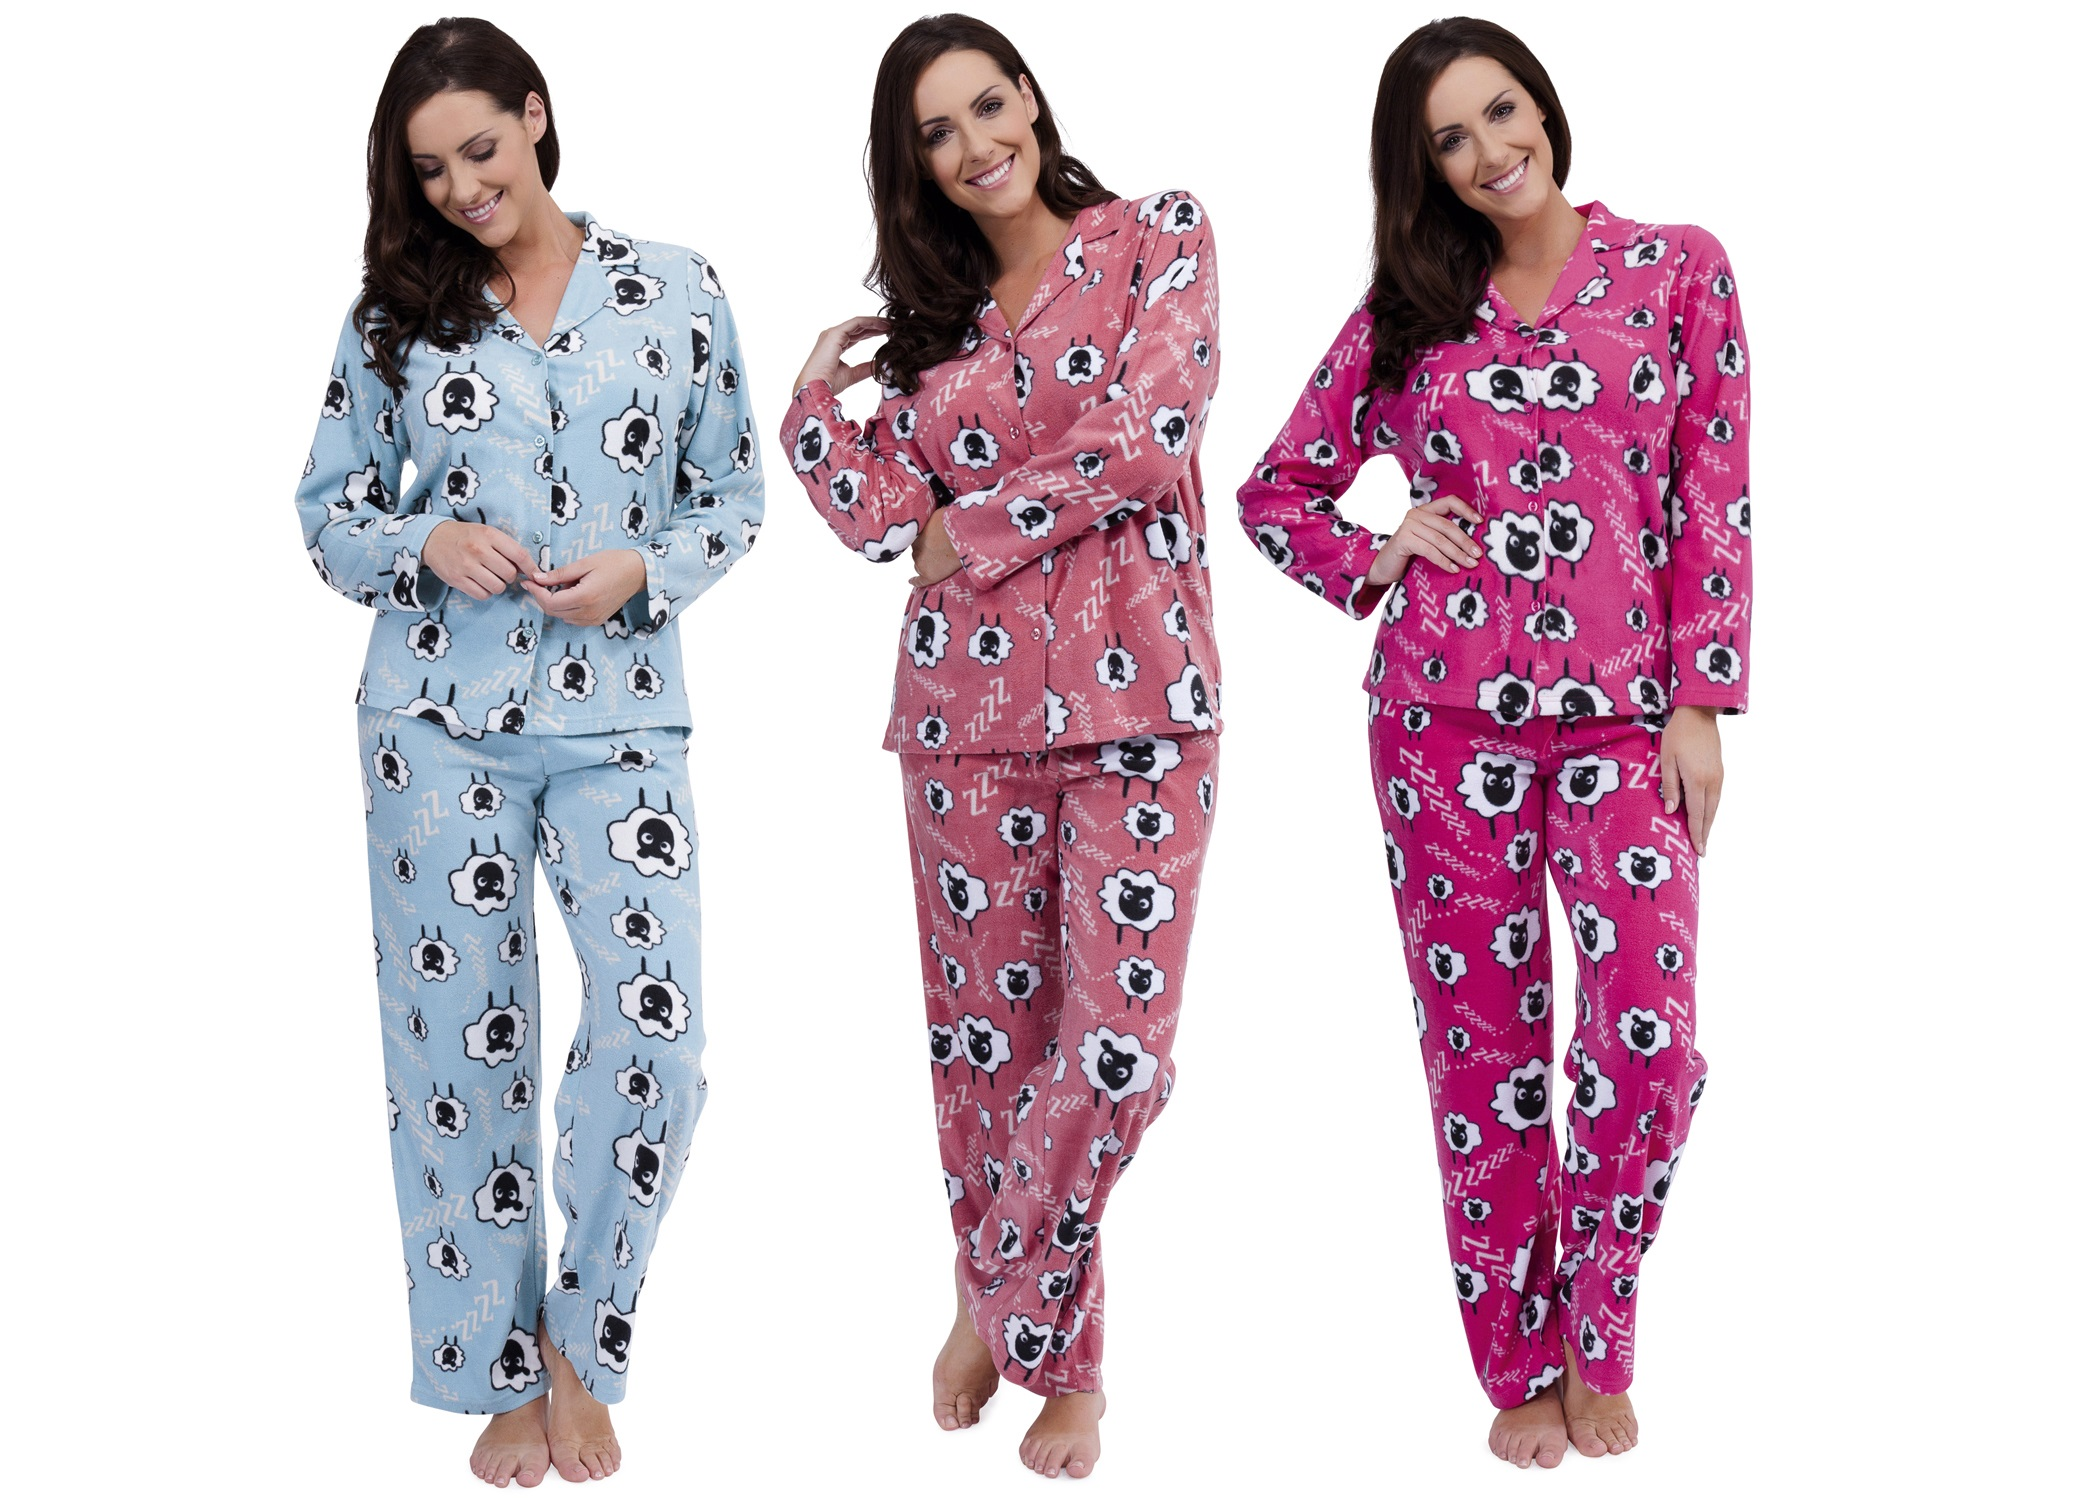 celebtubesnews.ml Best Sellers: The most popular items in Women's Pyjama Sets. celebtubesnews.ml Try Prime Clothing Disney Snow White Dwarfs Grumpy But Gorgeous Ladies Long Cotton Pyjamas UK Sizes 8/10 12/14 16/18 20/22 out of 5 stars £ - £ #